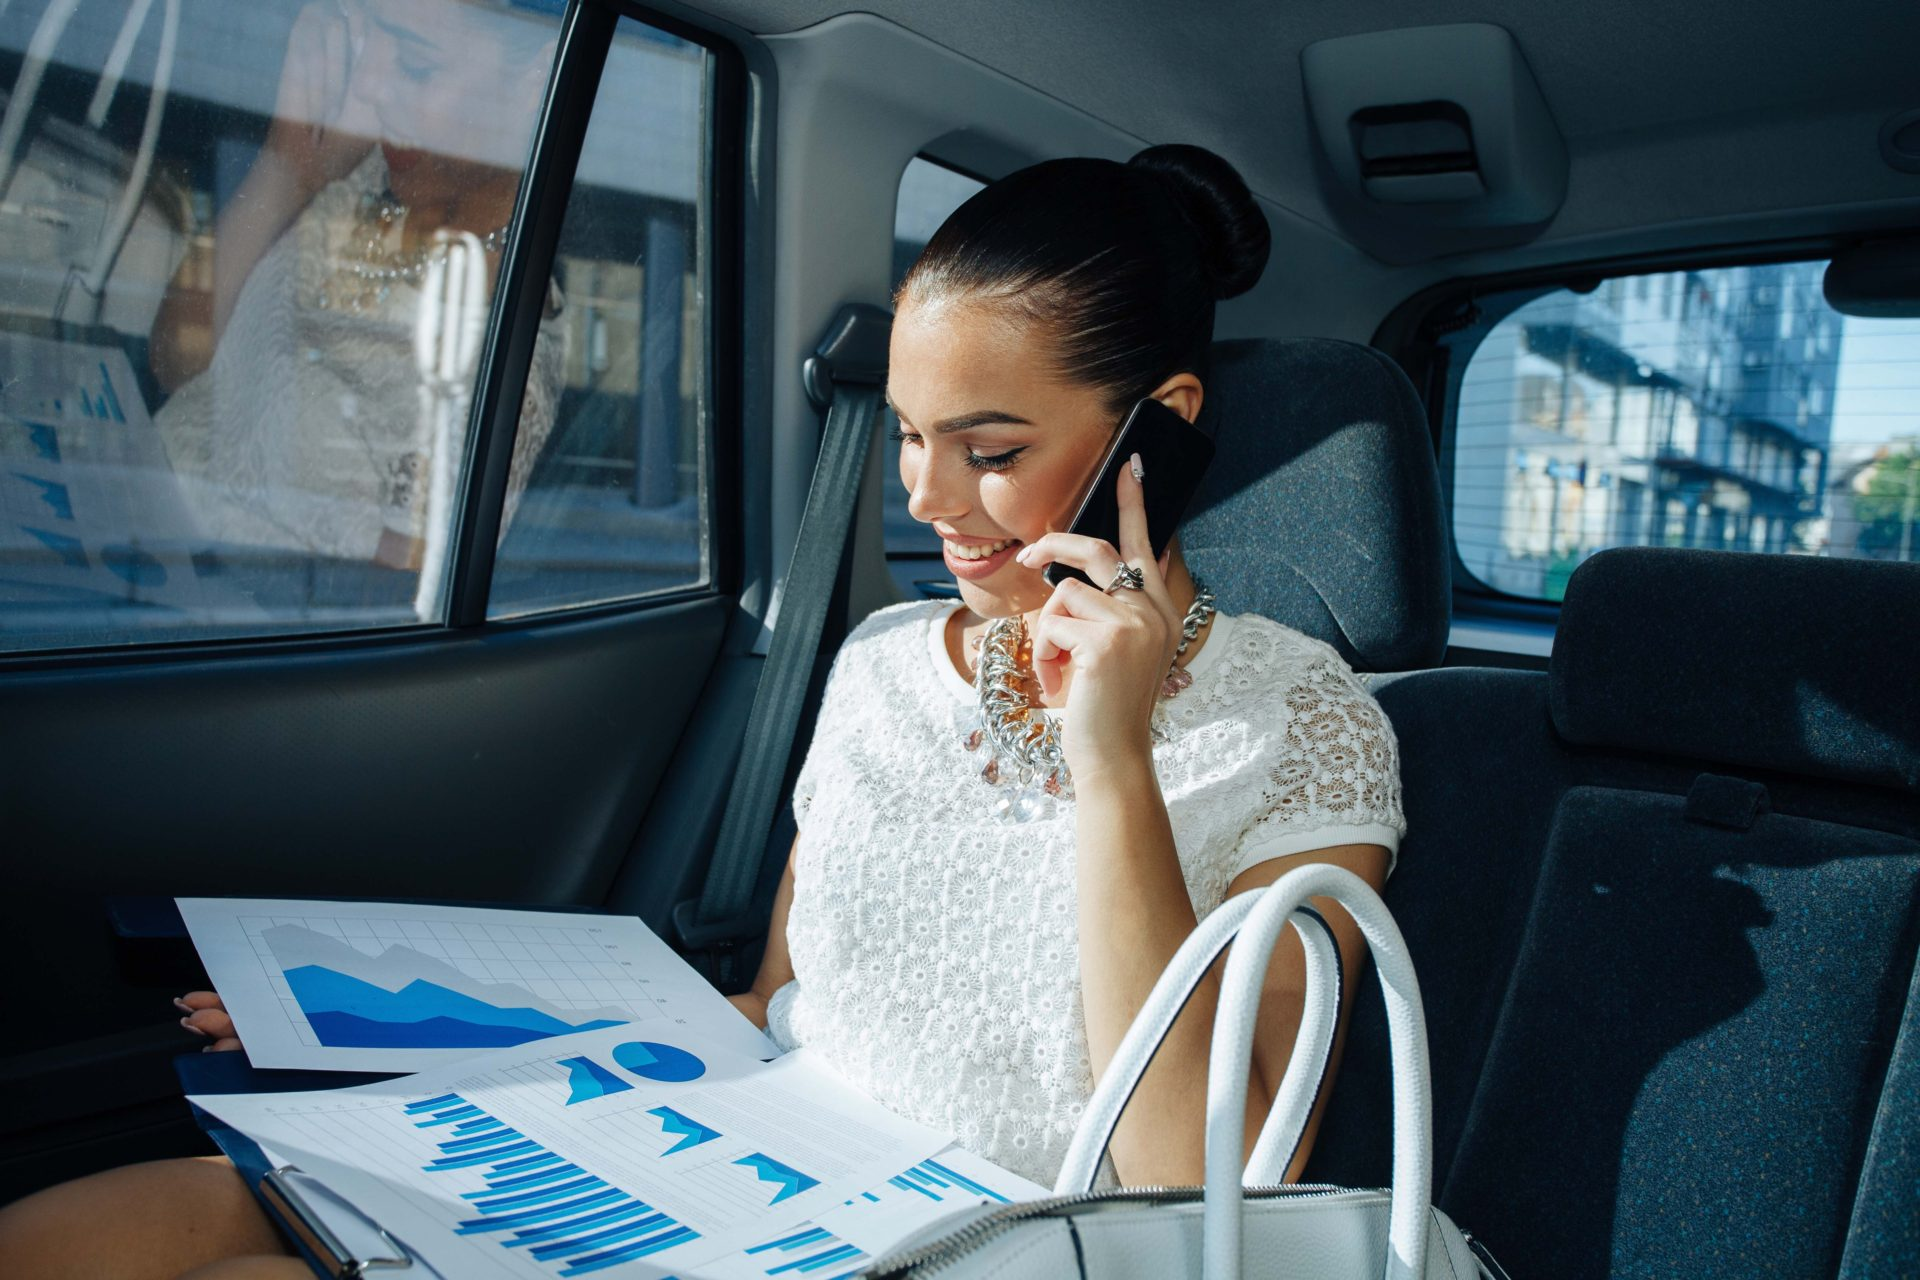 Business woman in black car